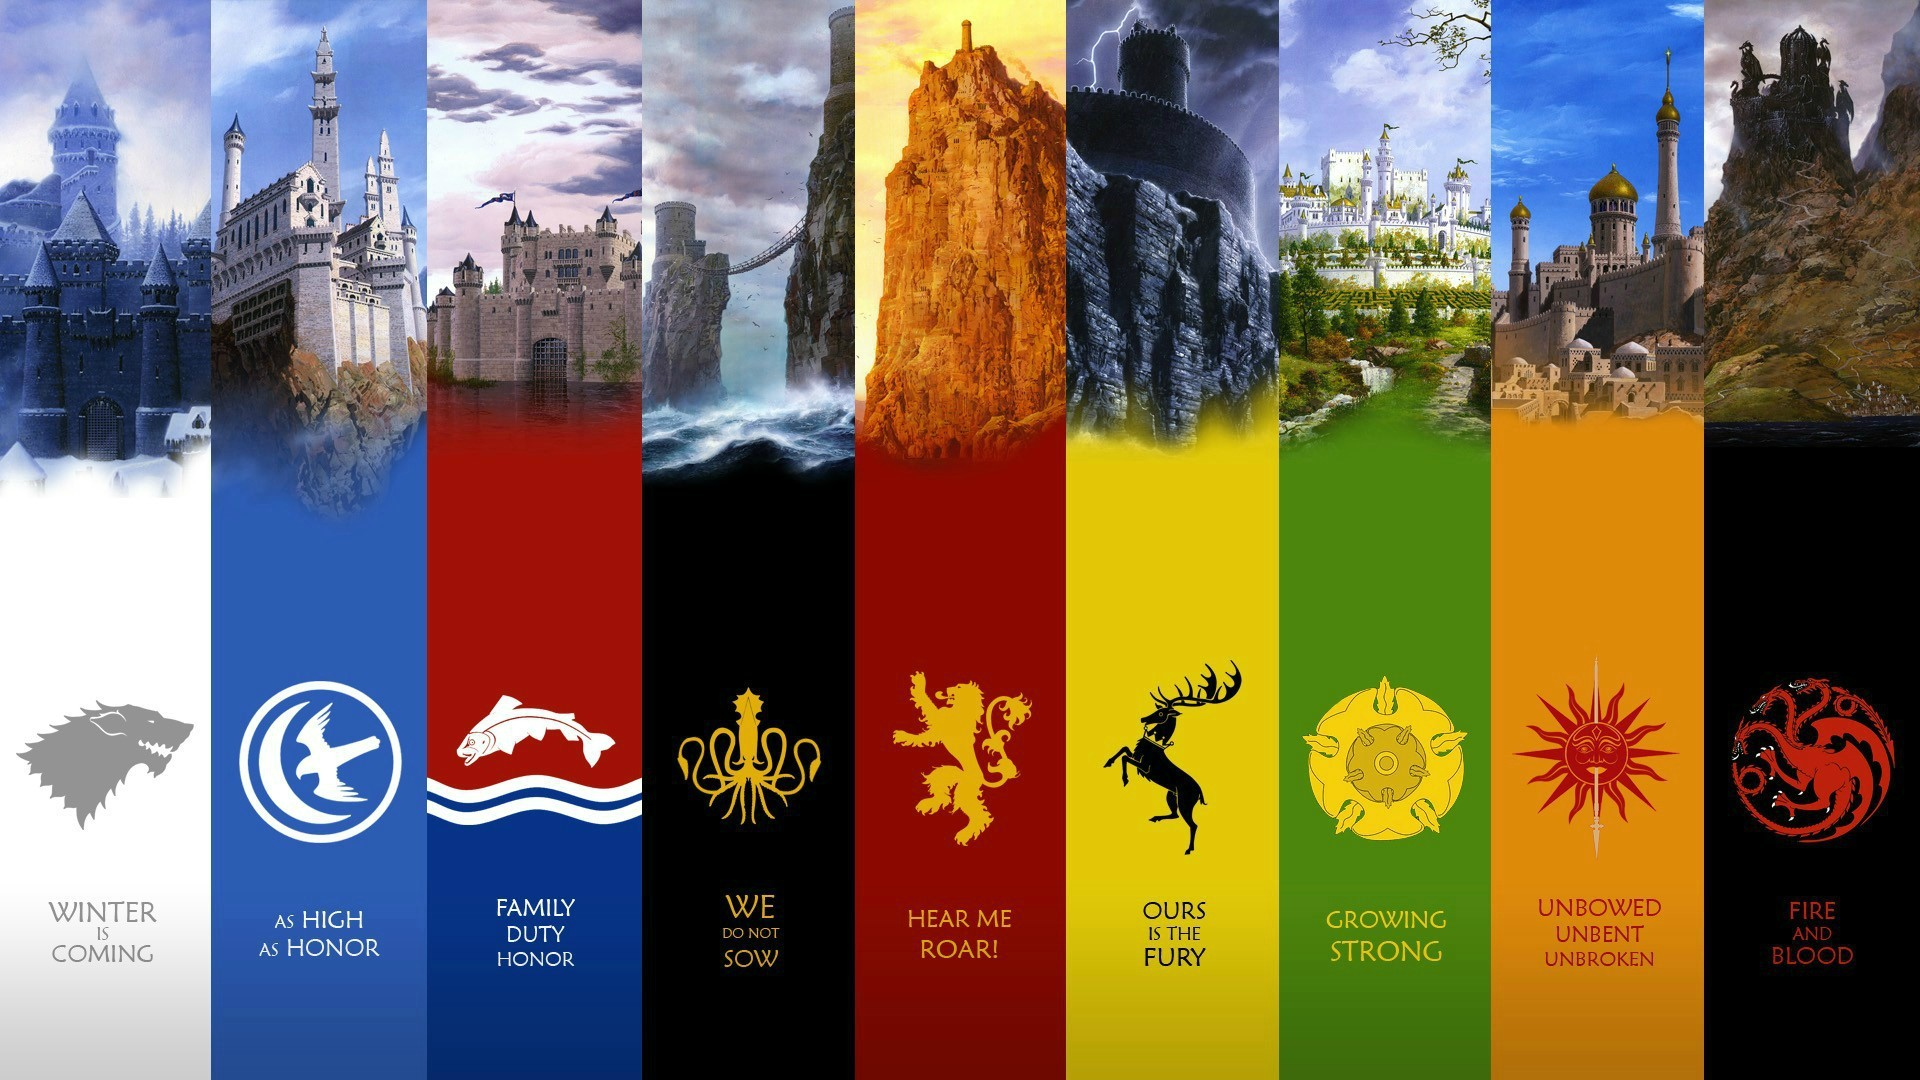 A Song Of Ice And Fire Computer Wallpapers, Desktop Backgrounds .